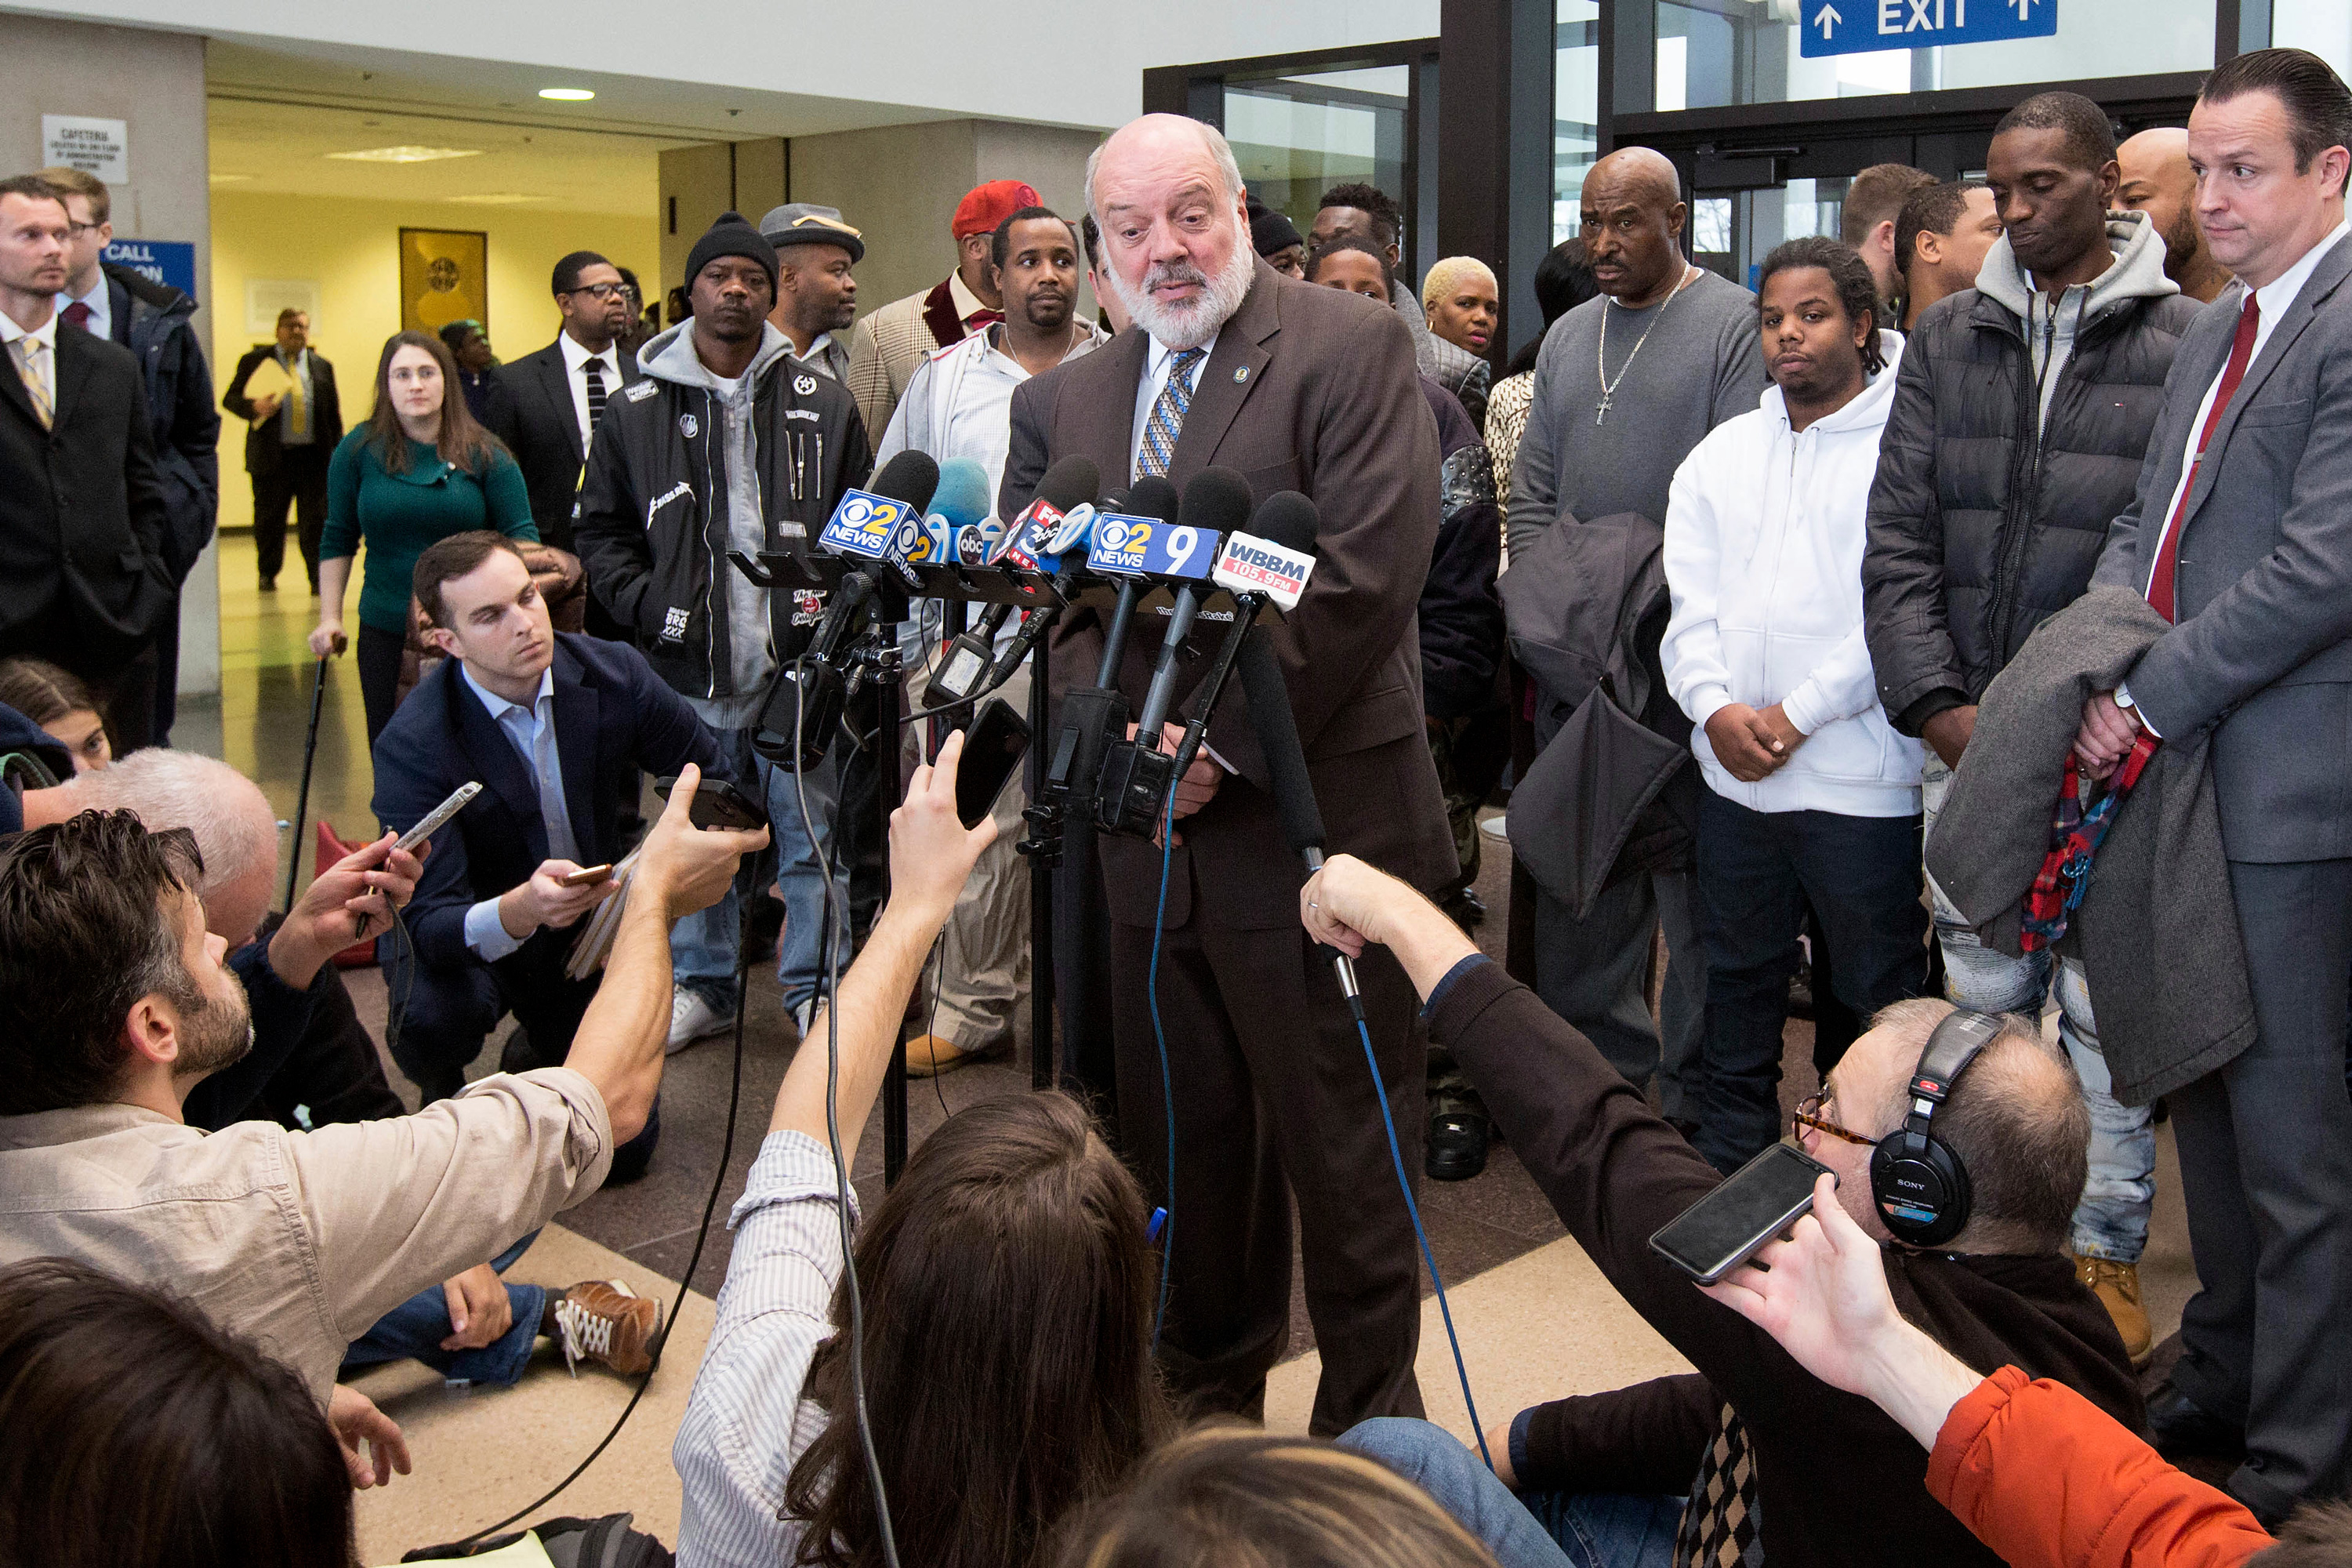 Mark Rotert, head of the conviction integrity unit of the Cook County State's Attorney's Office, talks to reporters Thursday, Nov. 16, 2017, in Chicago, after a judge in Chicago threw out the convictions of 15 men, some of whom are standing behind him, who say a corrupt Chicago police sergeant manufactured evidence that sent them to prison. Cook County prosecutors made the request Thursday as 10 of the men stood before Judge Leroy Martin Jr. It was the latest chapter in a scandal that resulted in former Sgt. Ronald Watts' 2013 conviction for extorting money from drug dealers. (AP Photo/Teresa Crawford)